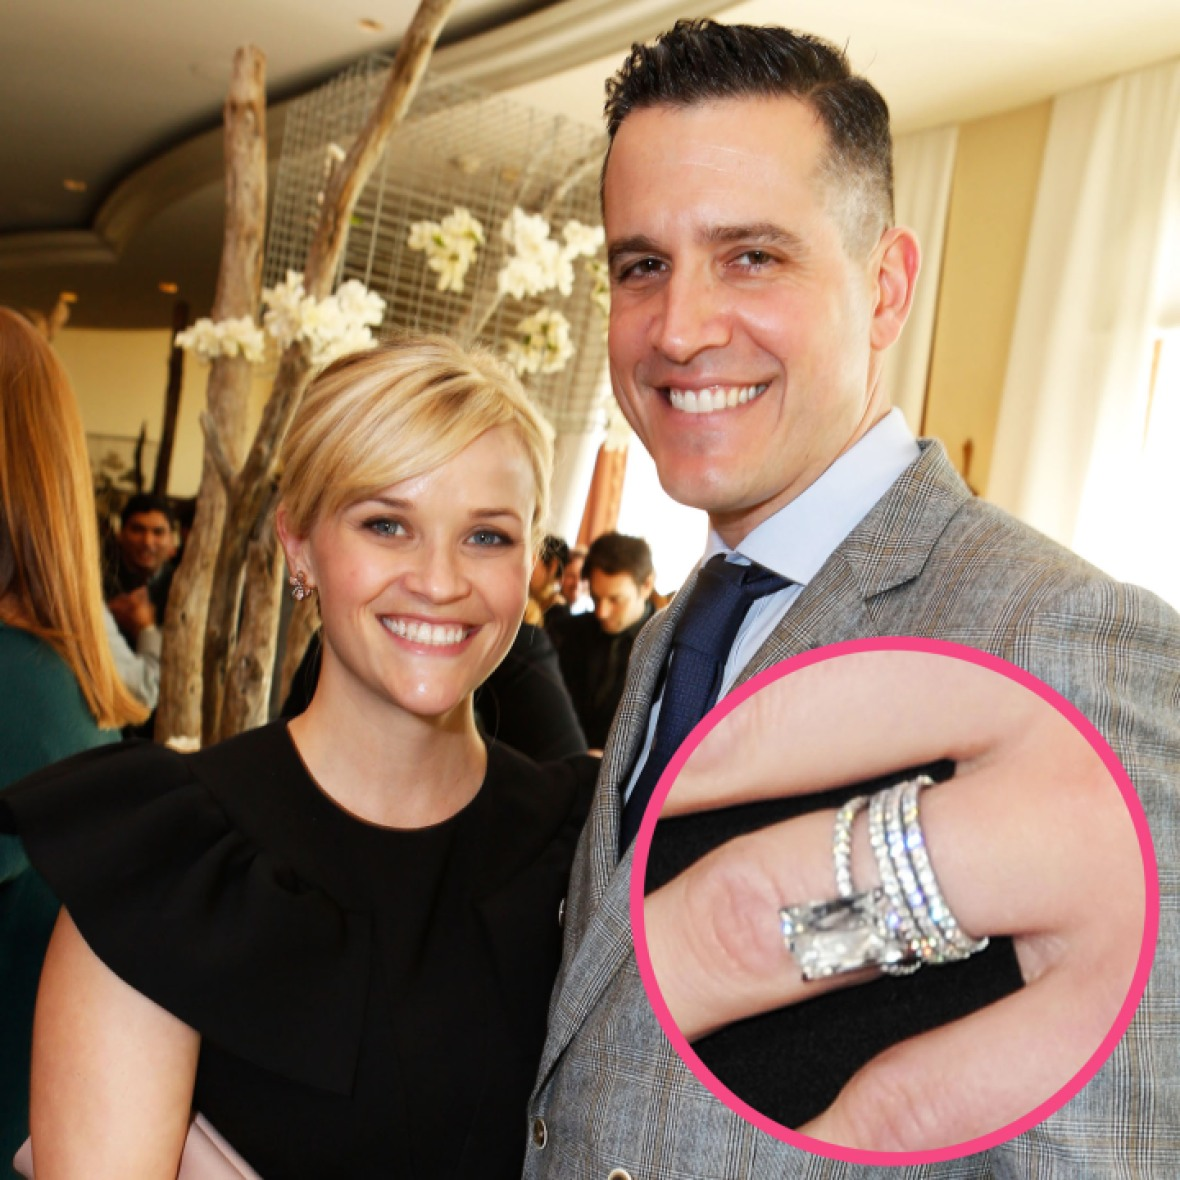 reese witherspoon wedding ring getty images